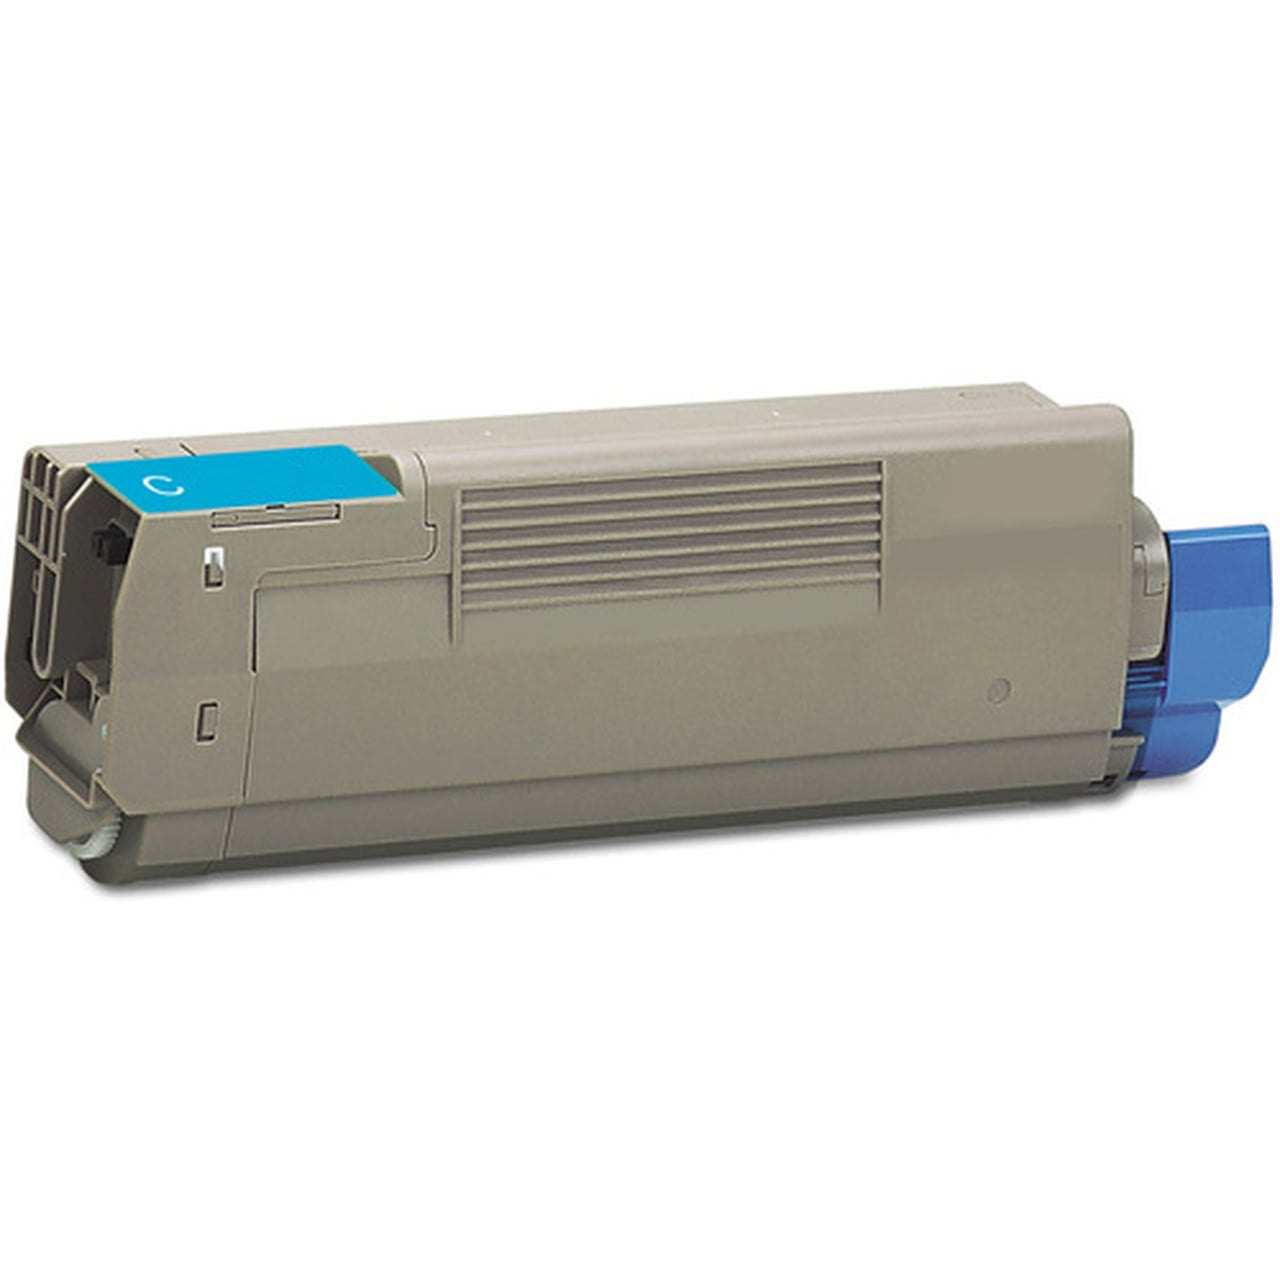 43034803 Toner Cartridge - Okidata Remanufactured (Cyan)